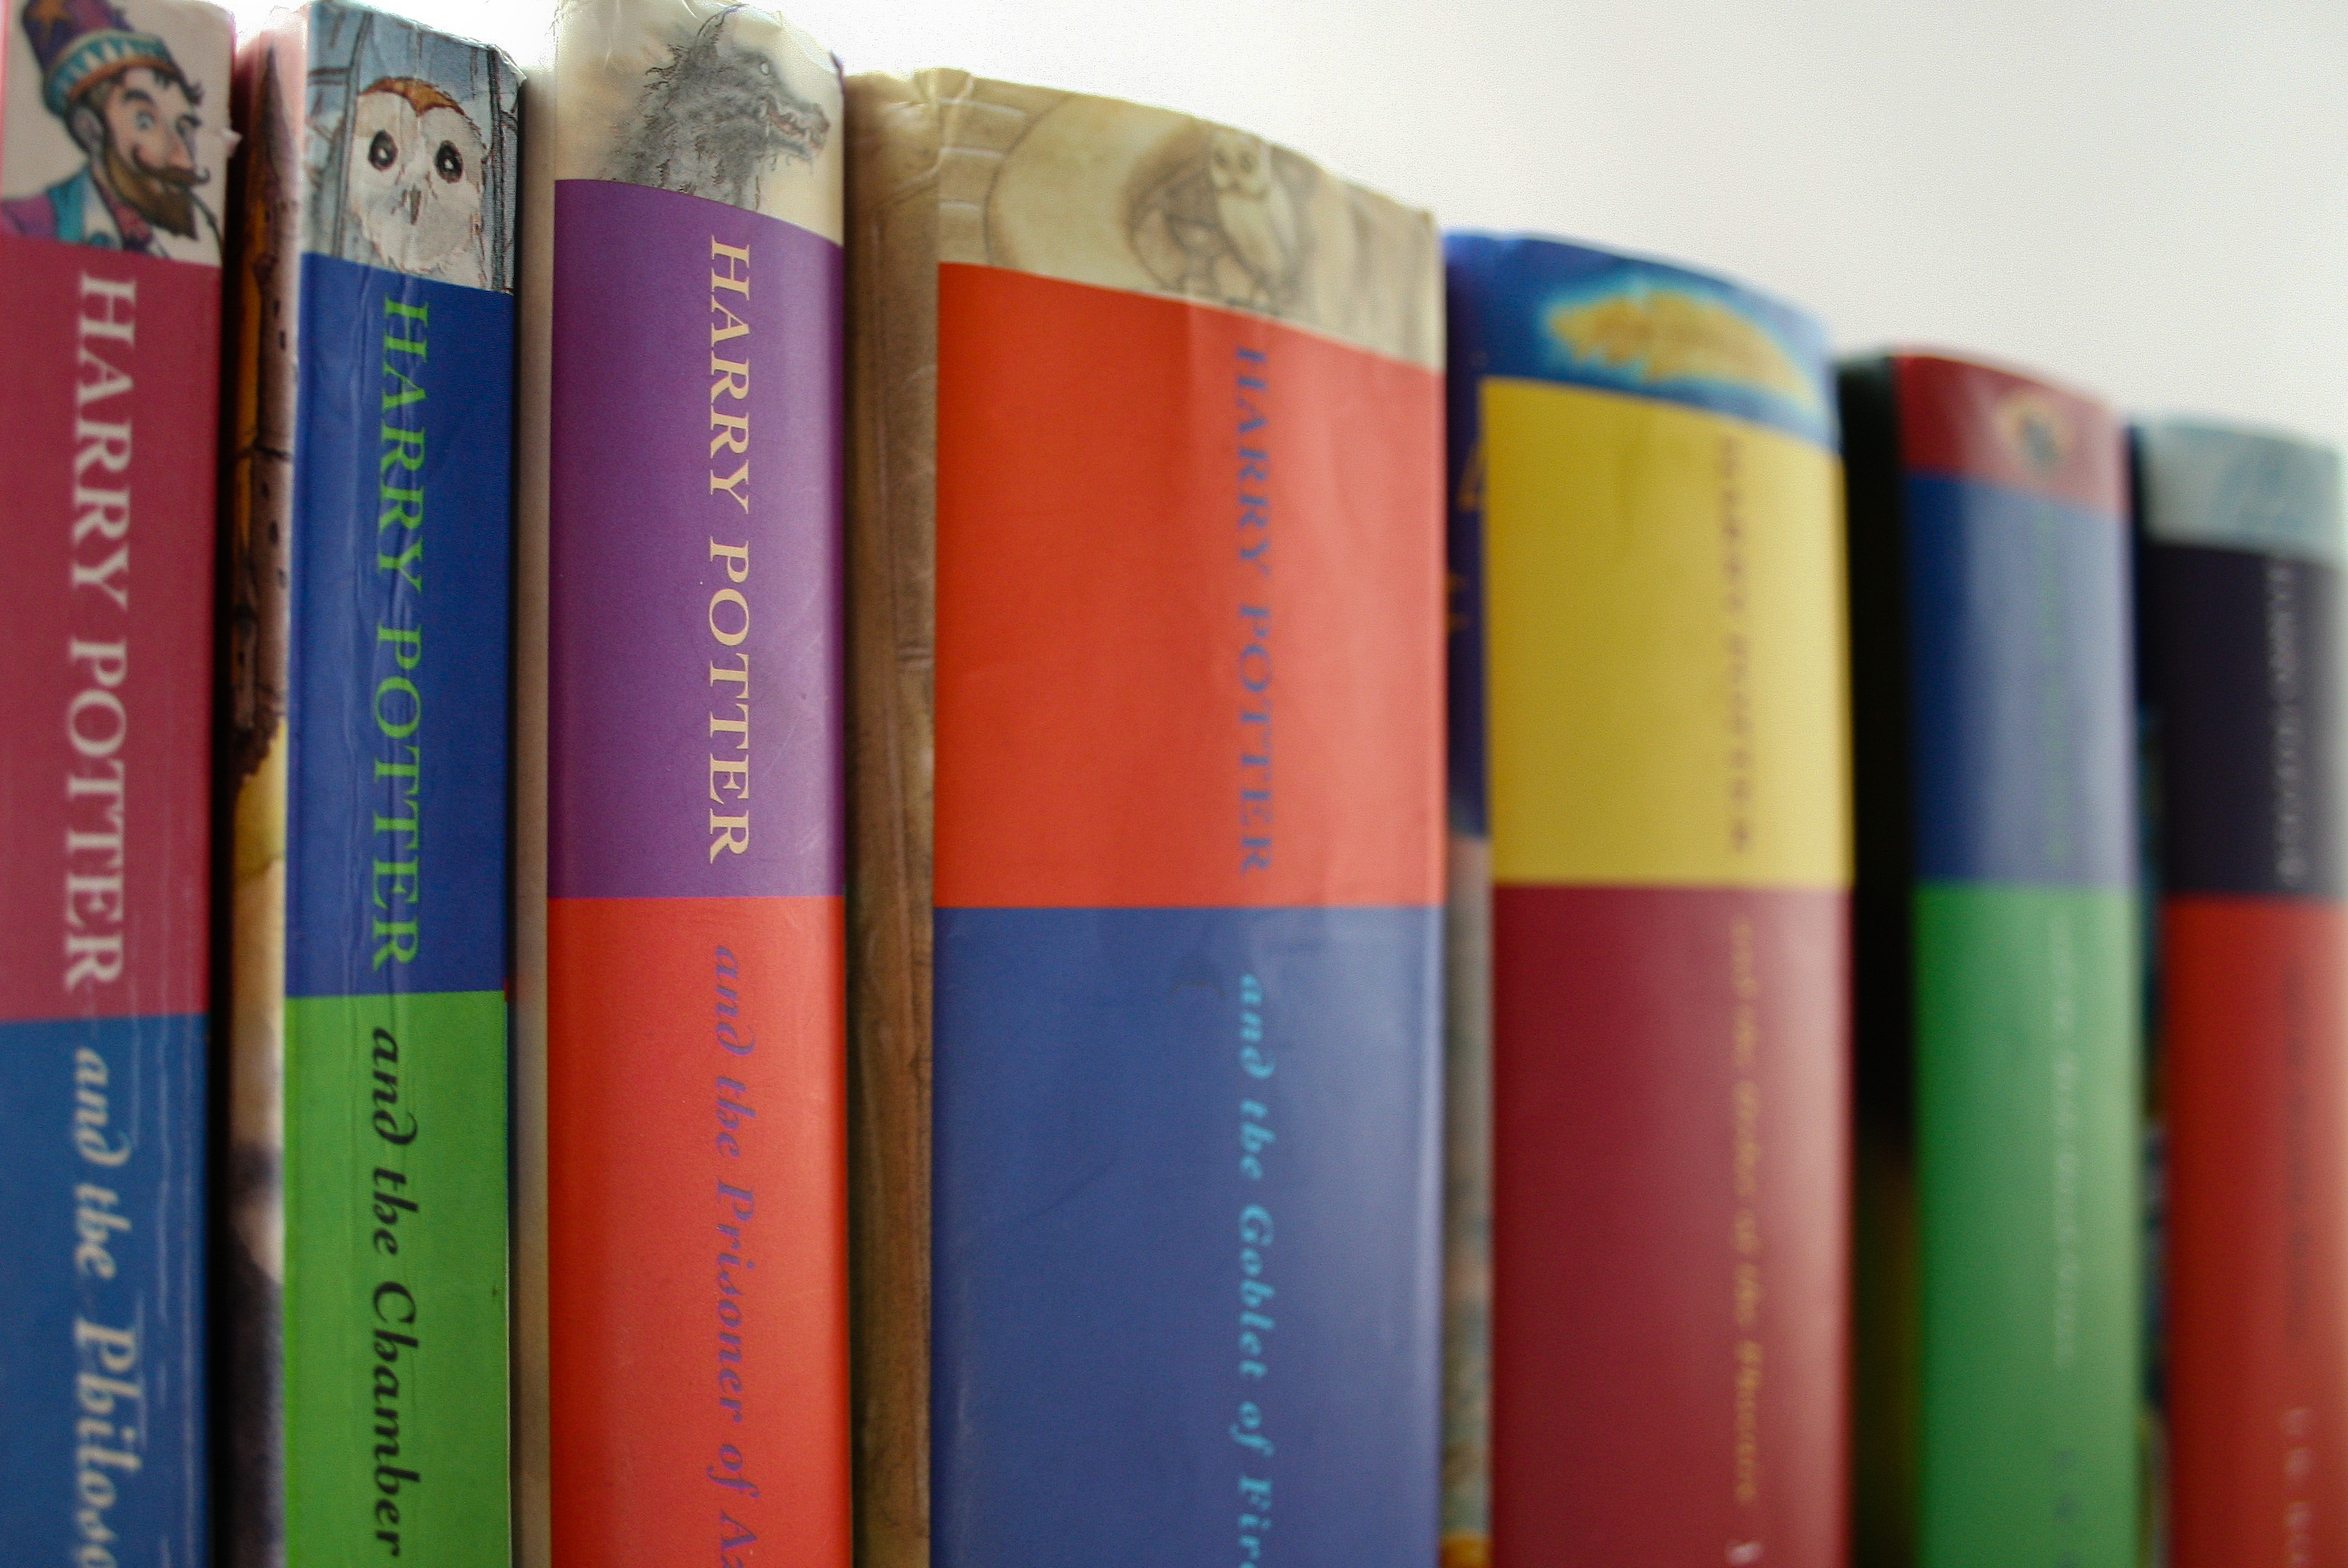 Harry Potter Book Banned : Literary classics that have been banned history lists